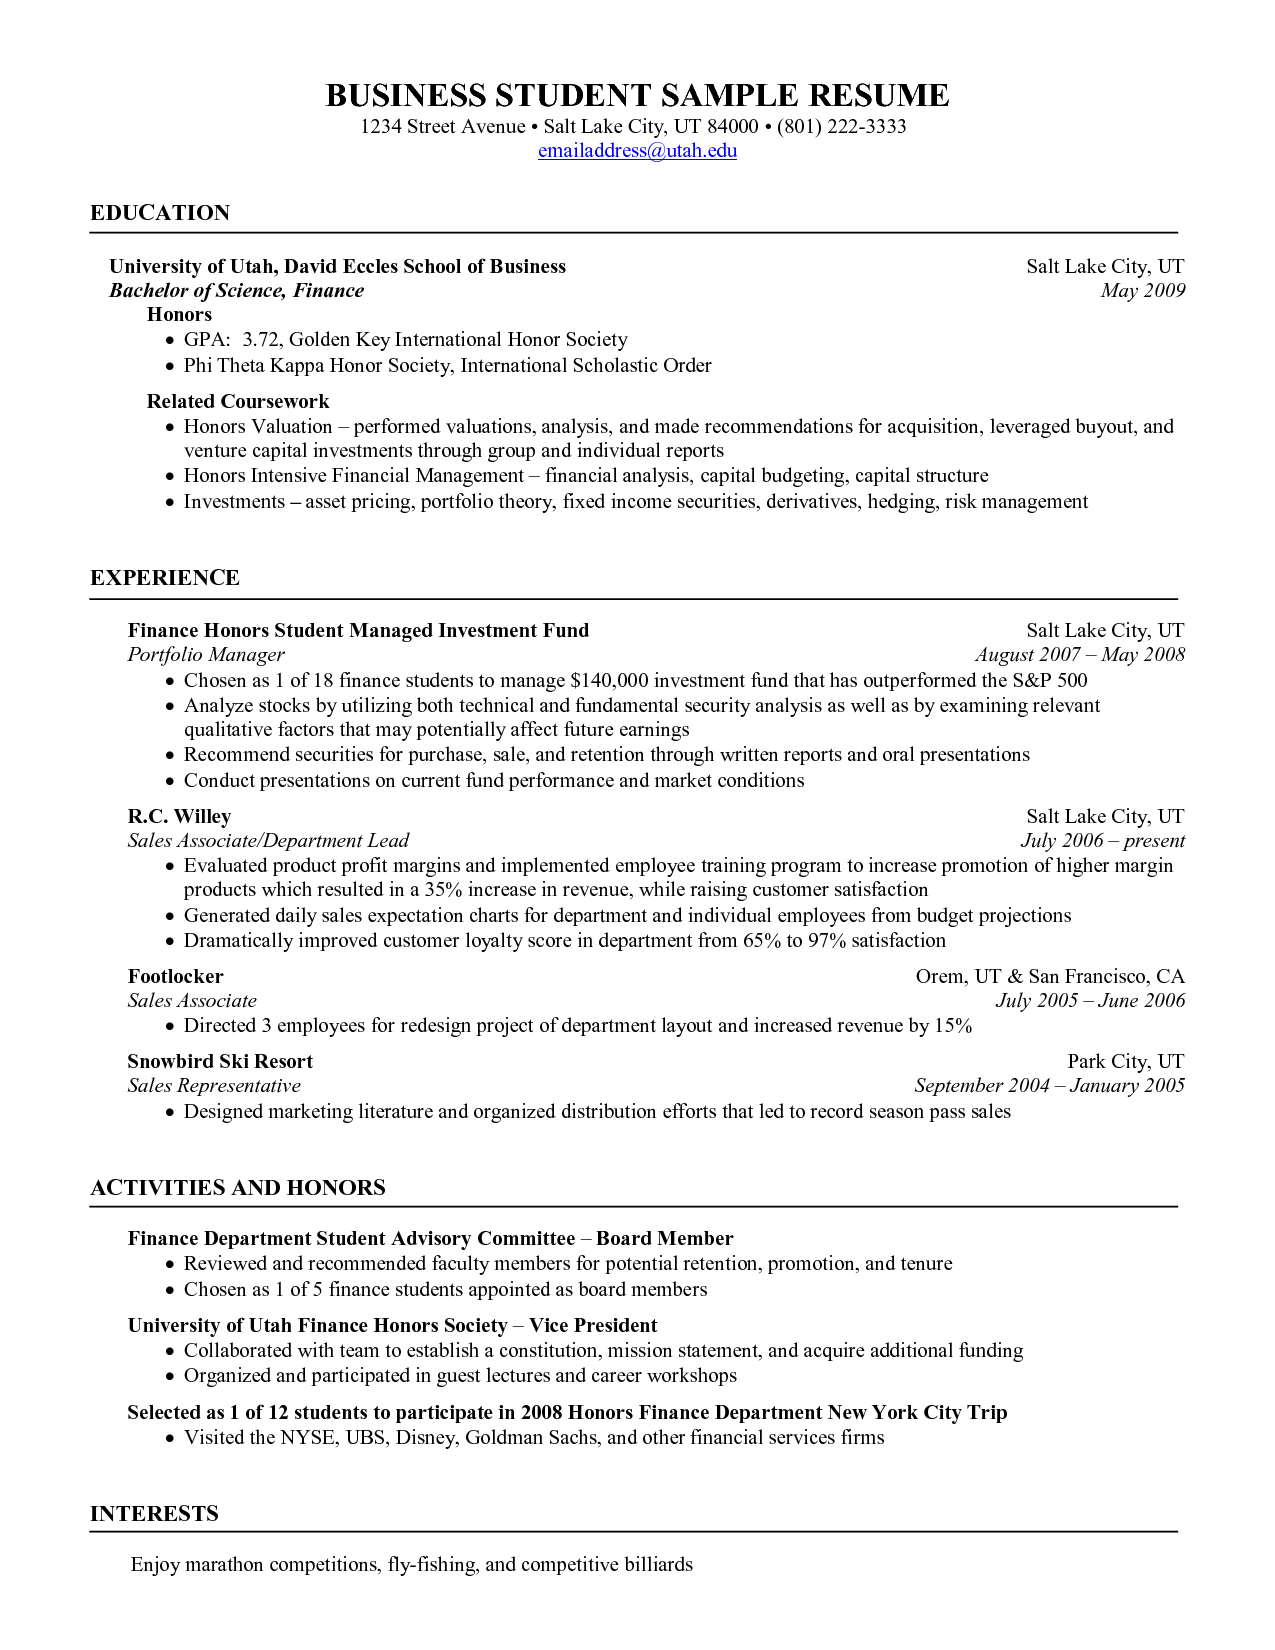 stockroom manager resume resumecareer info stockroom resume